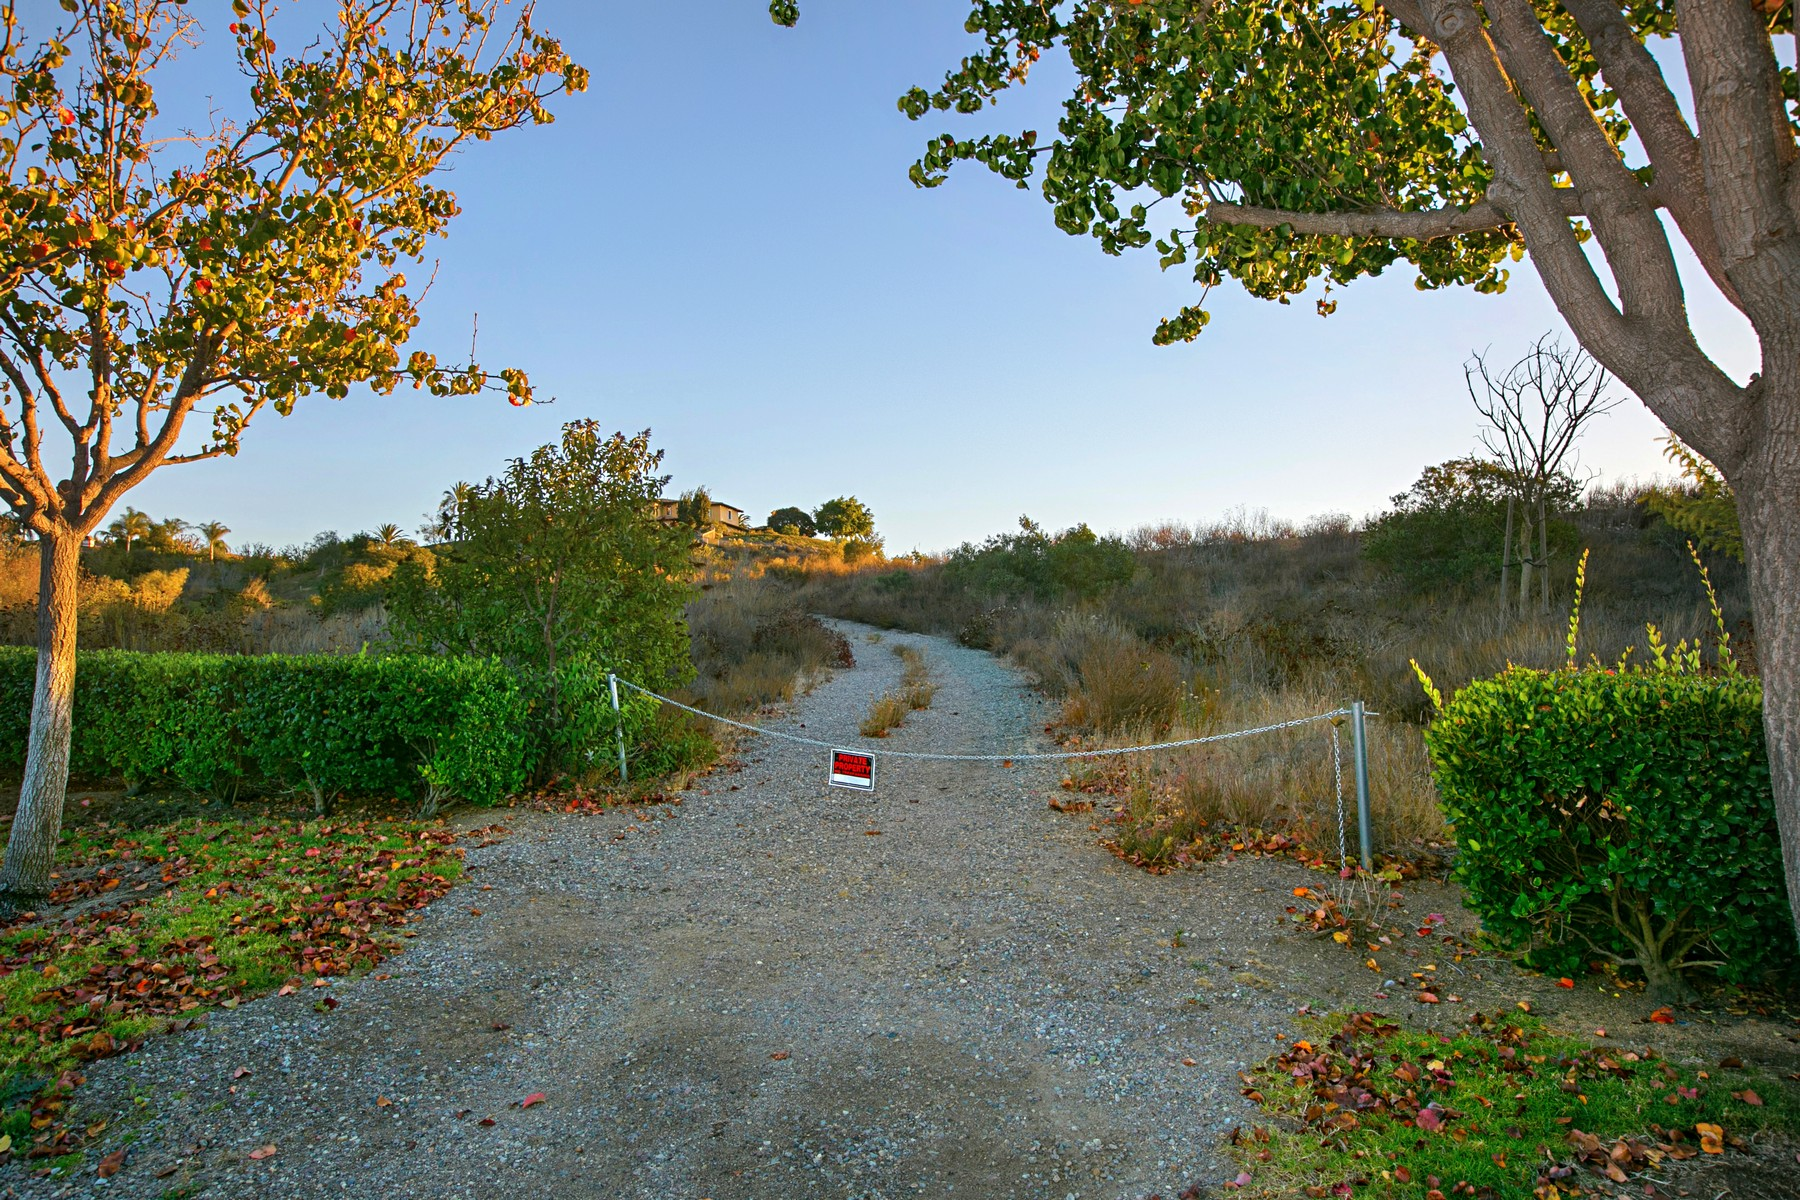 Land for Sale at 14355 Stage Coach 14355 Stage Coach Rd, Poway, California, 92064 United States